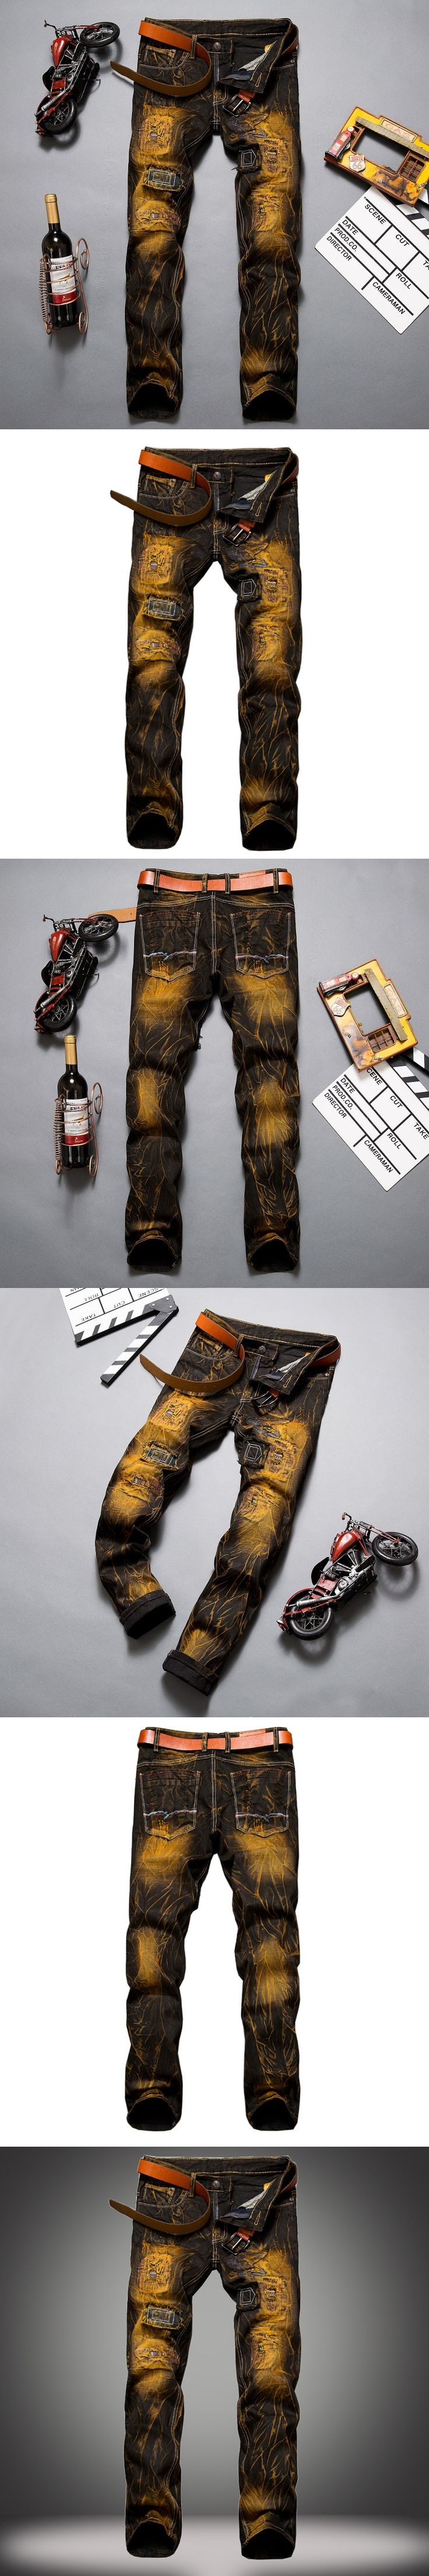 Metrosexual Straight Destroyed Jeans Brand Casual Slim Ripped Jeans Homme Retro Men's Trousers Denim High Quality Cotton 28-38